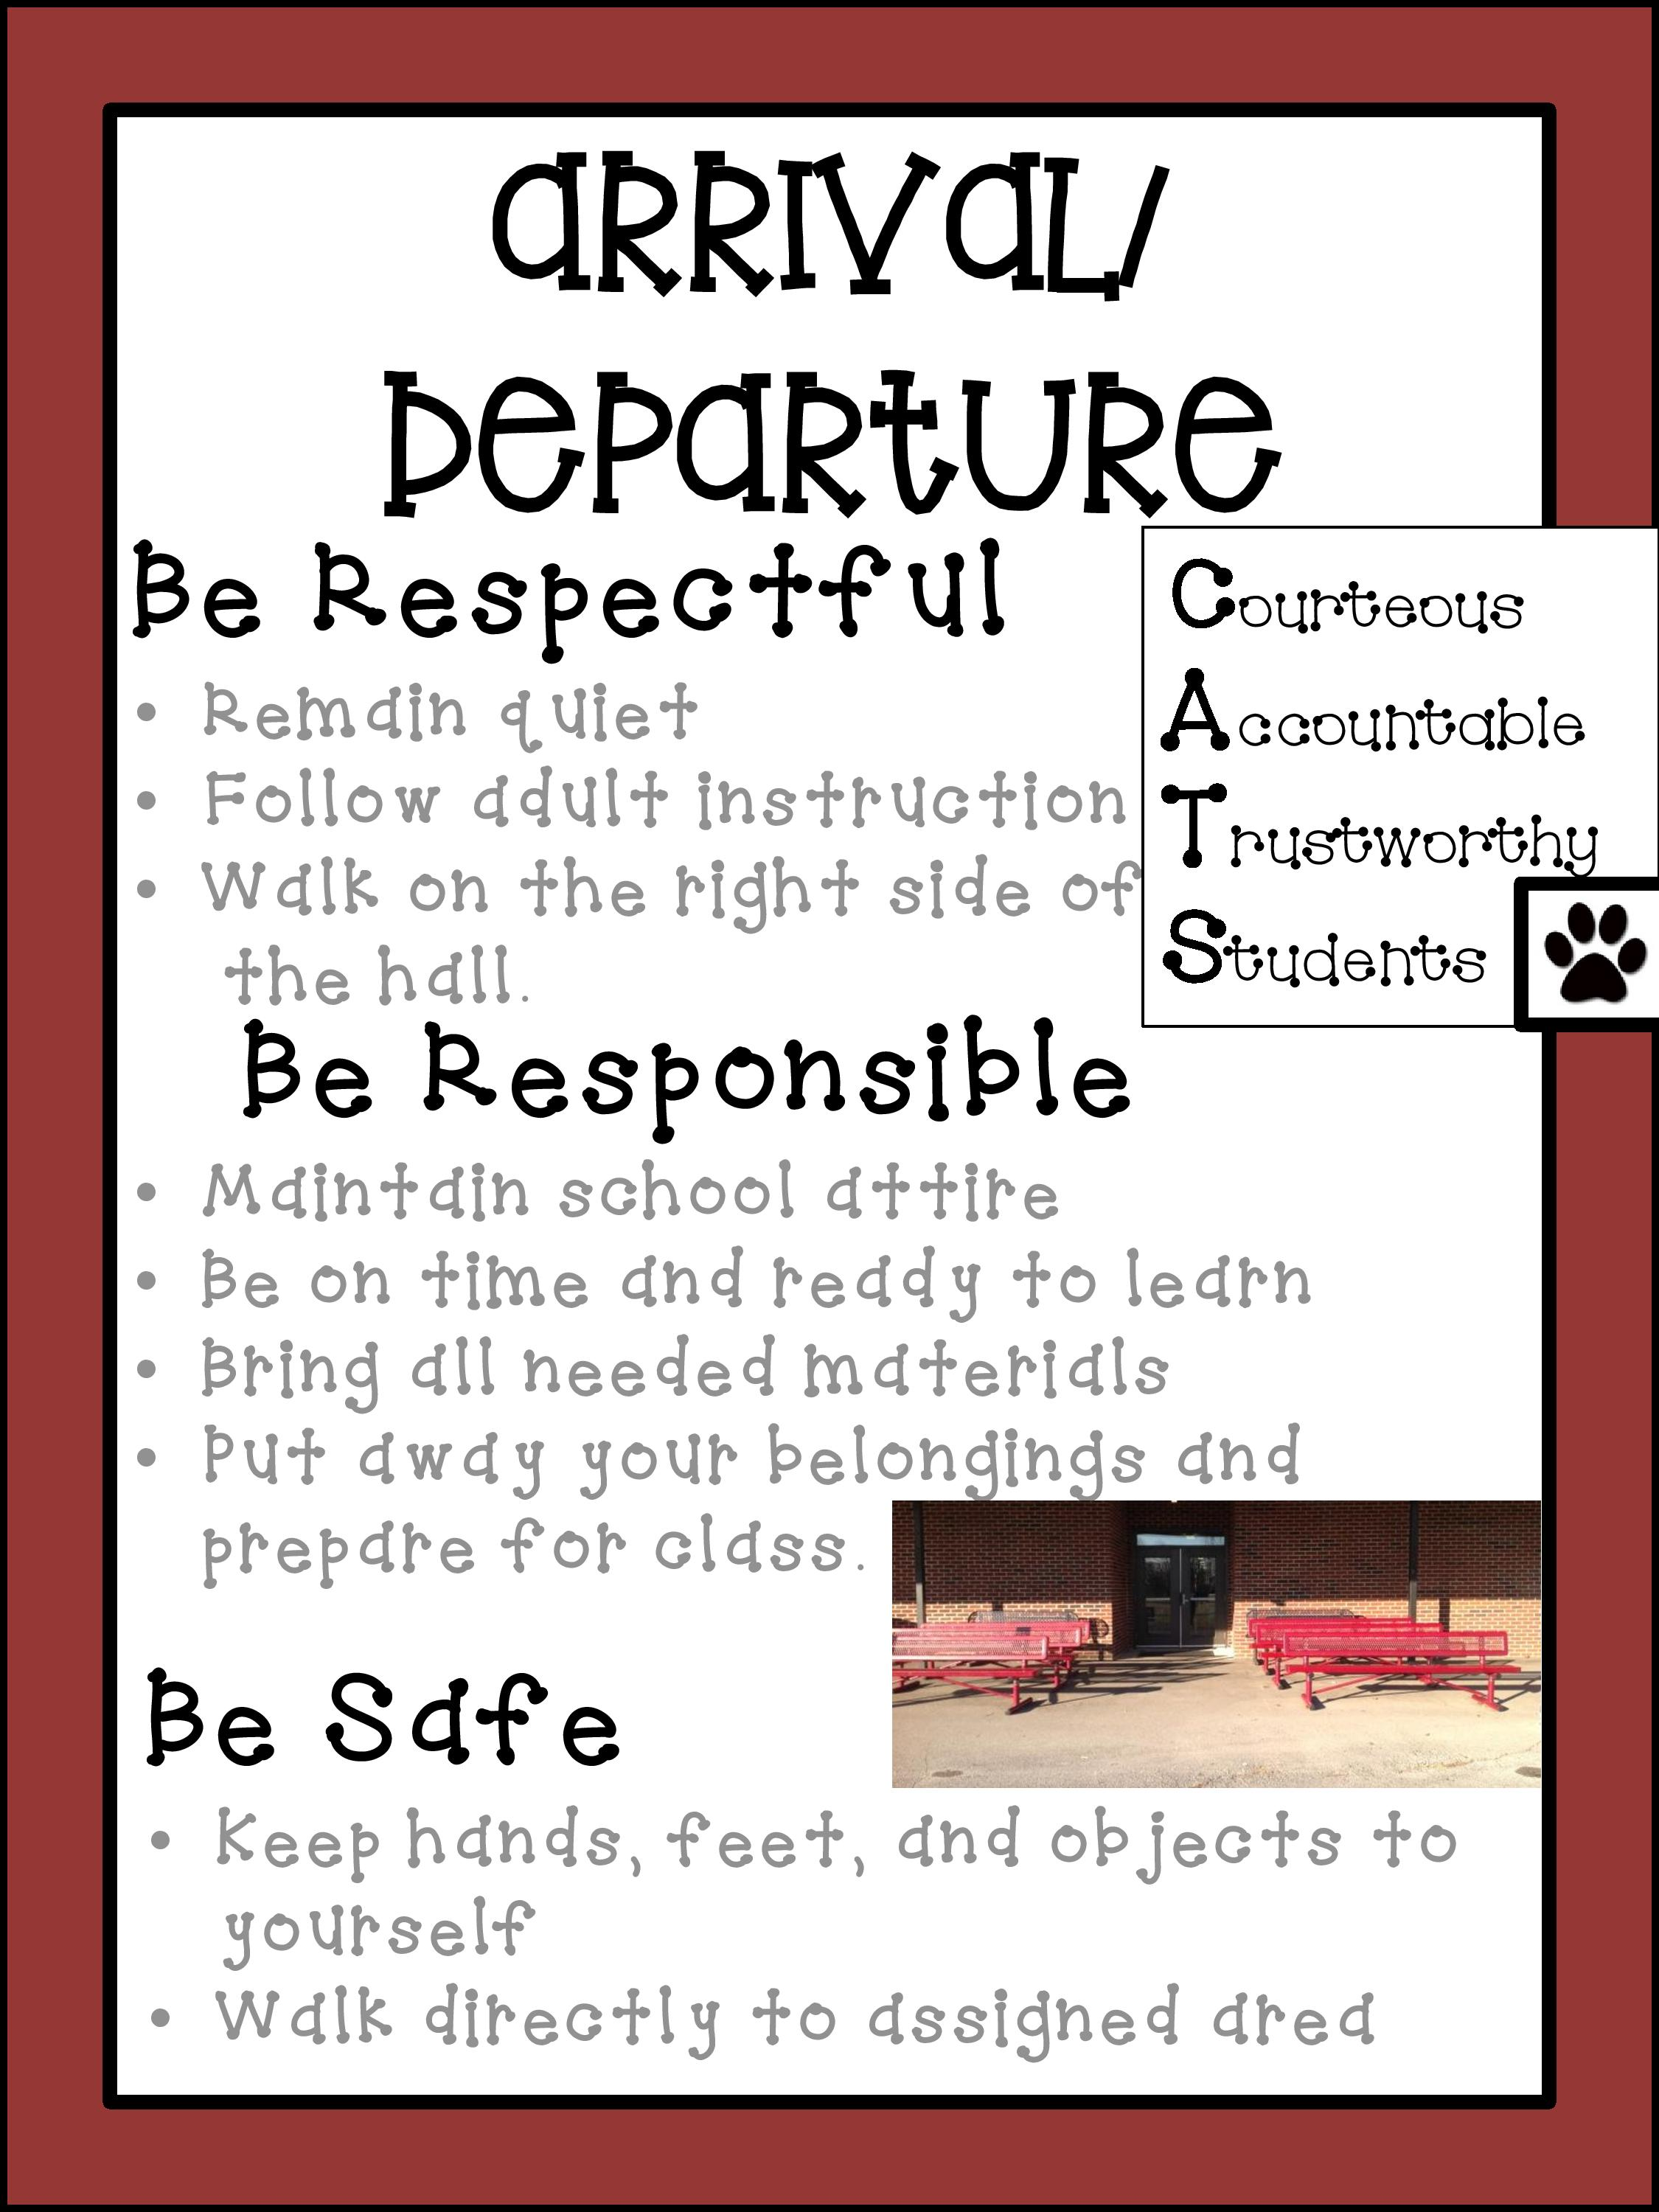 arrival/departure expectations